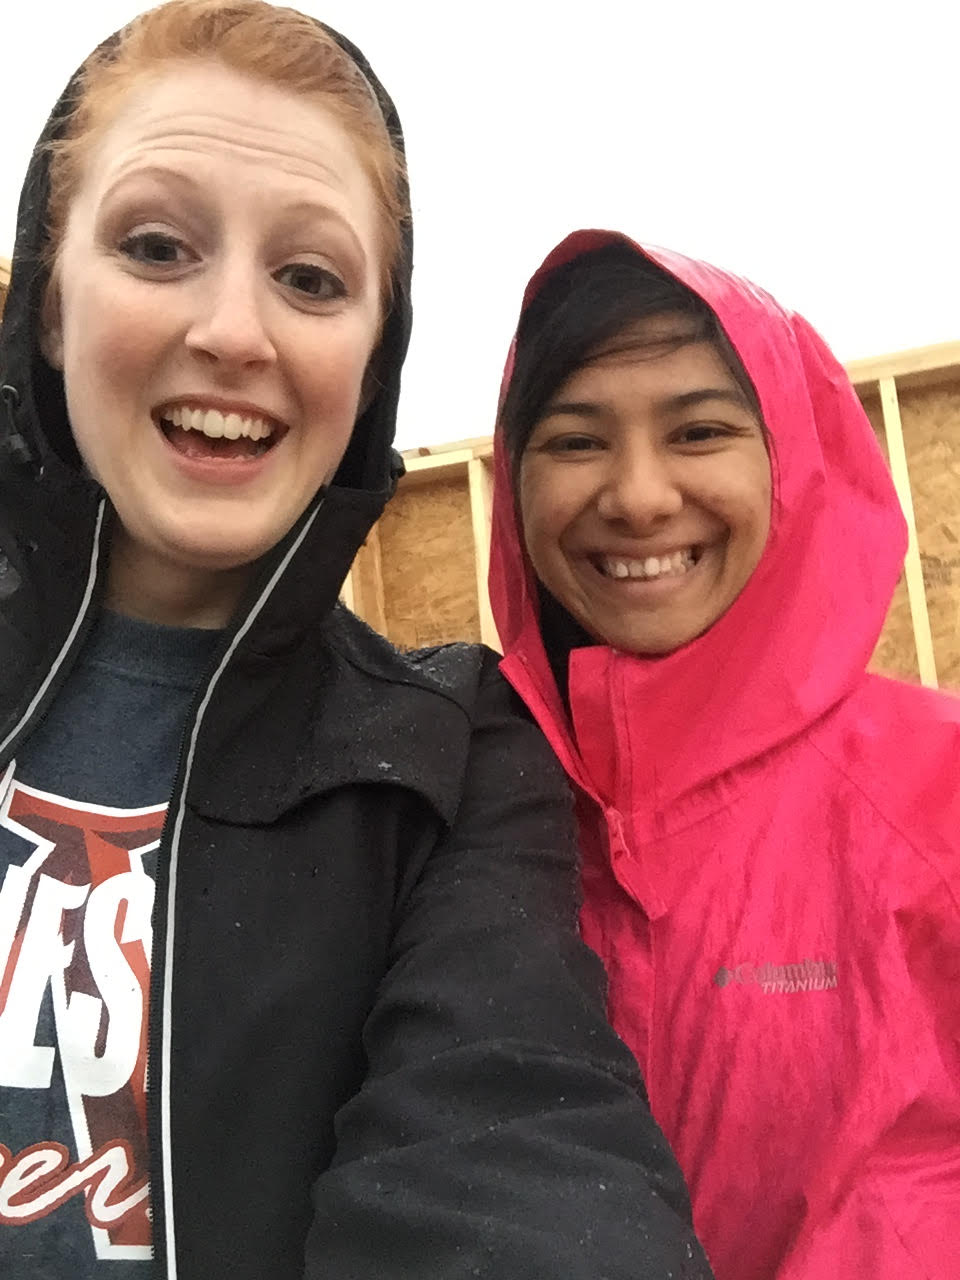 Katelyn and Anna trying to stay dry from the rain.